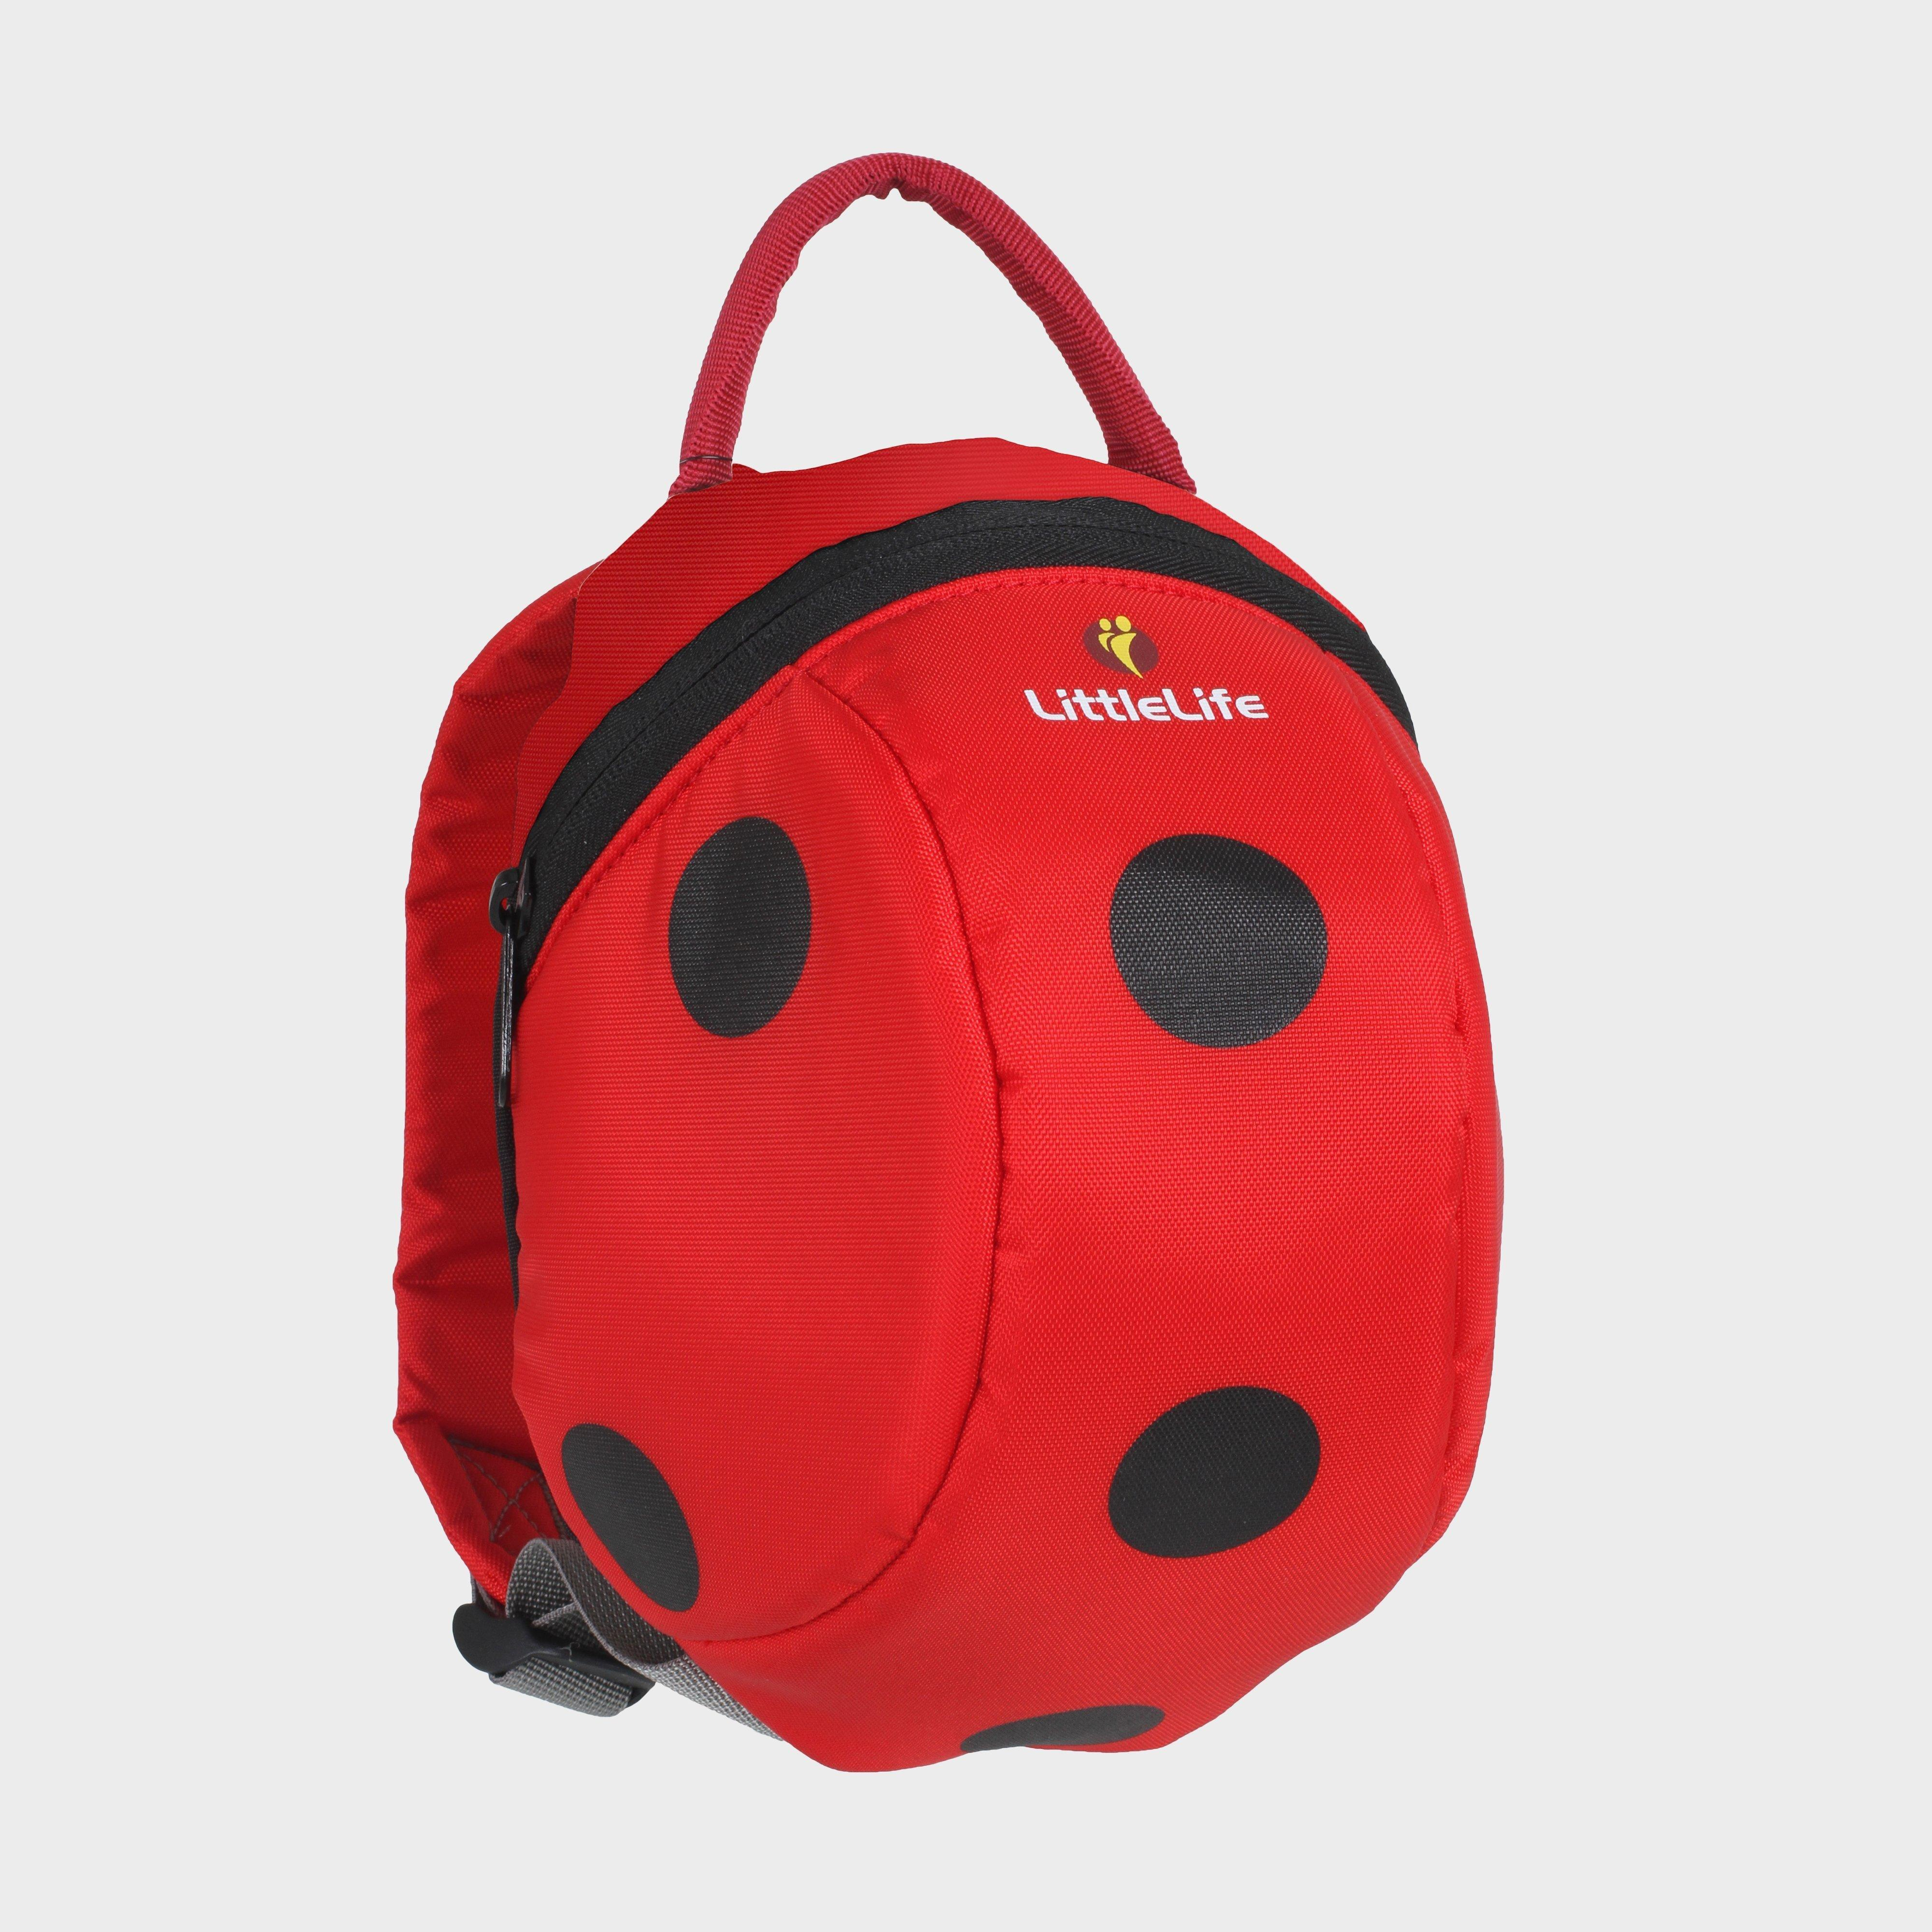 Littlelife Ladybird Toddler Pack with Rein, Red